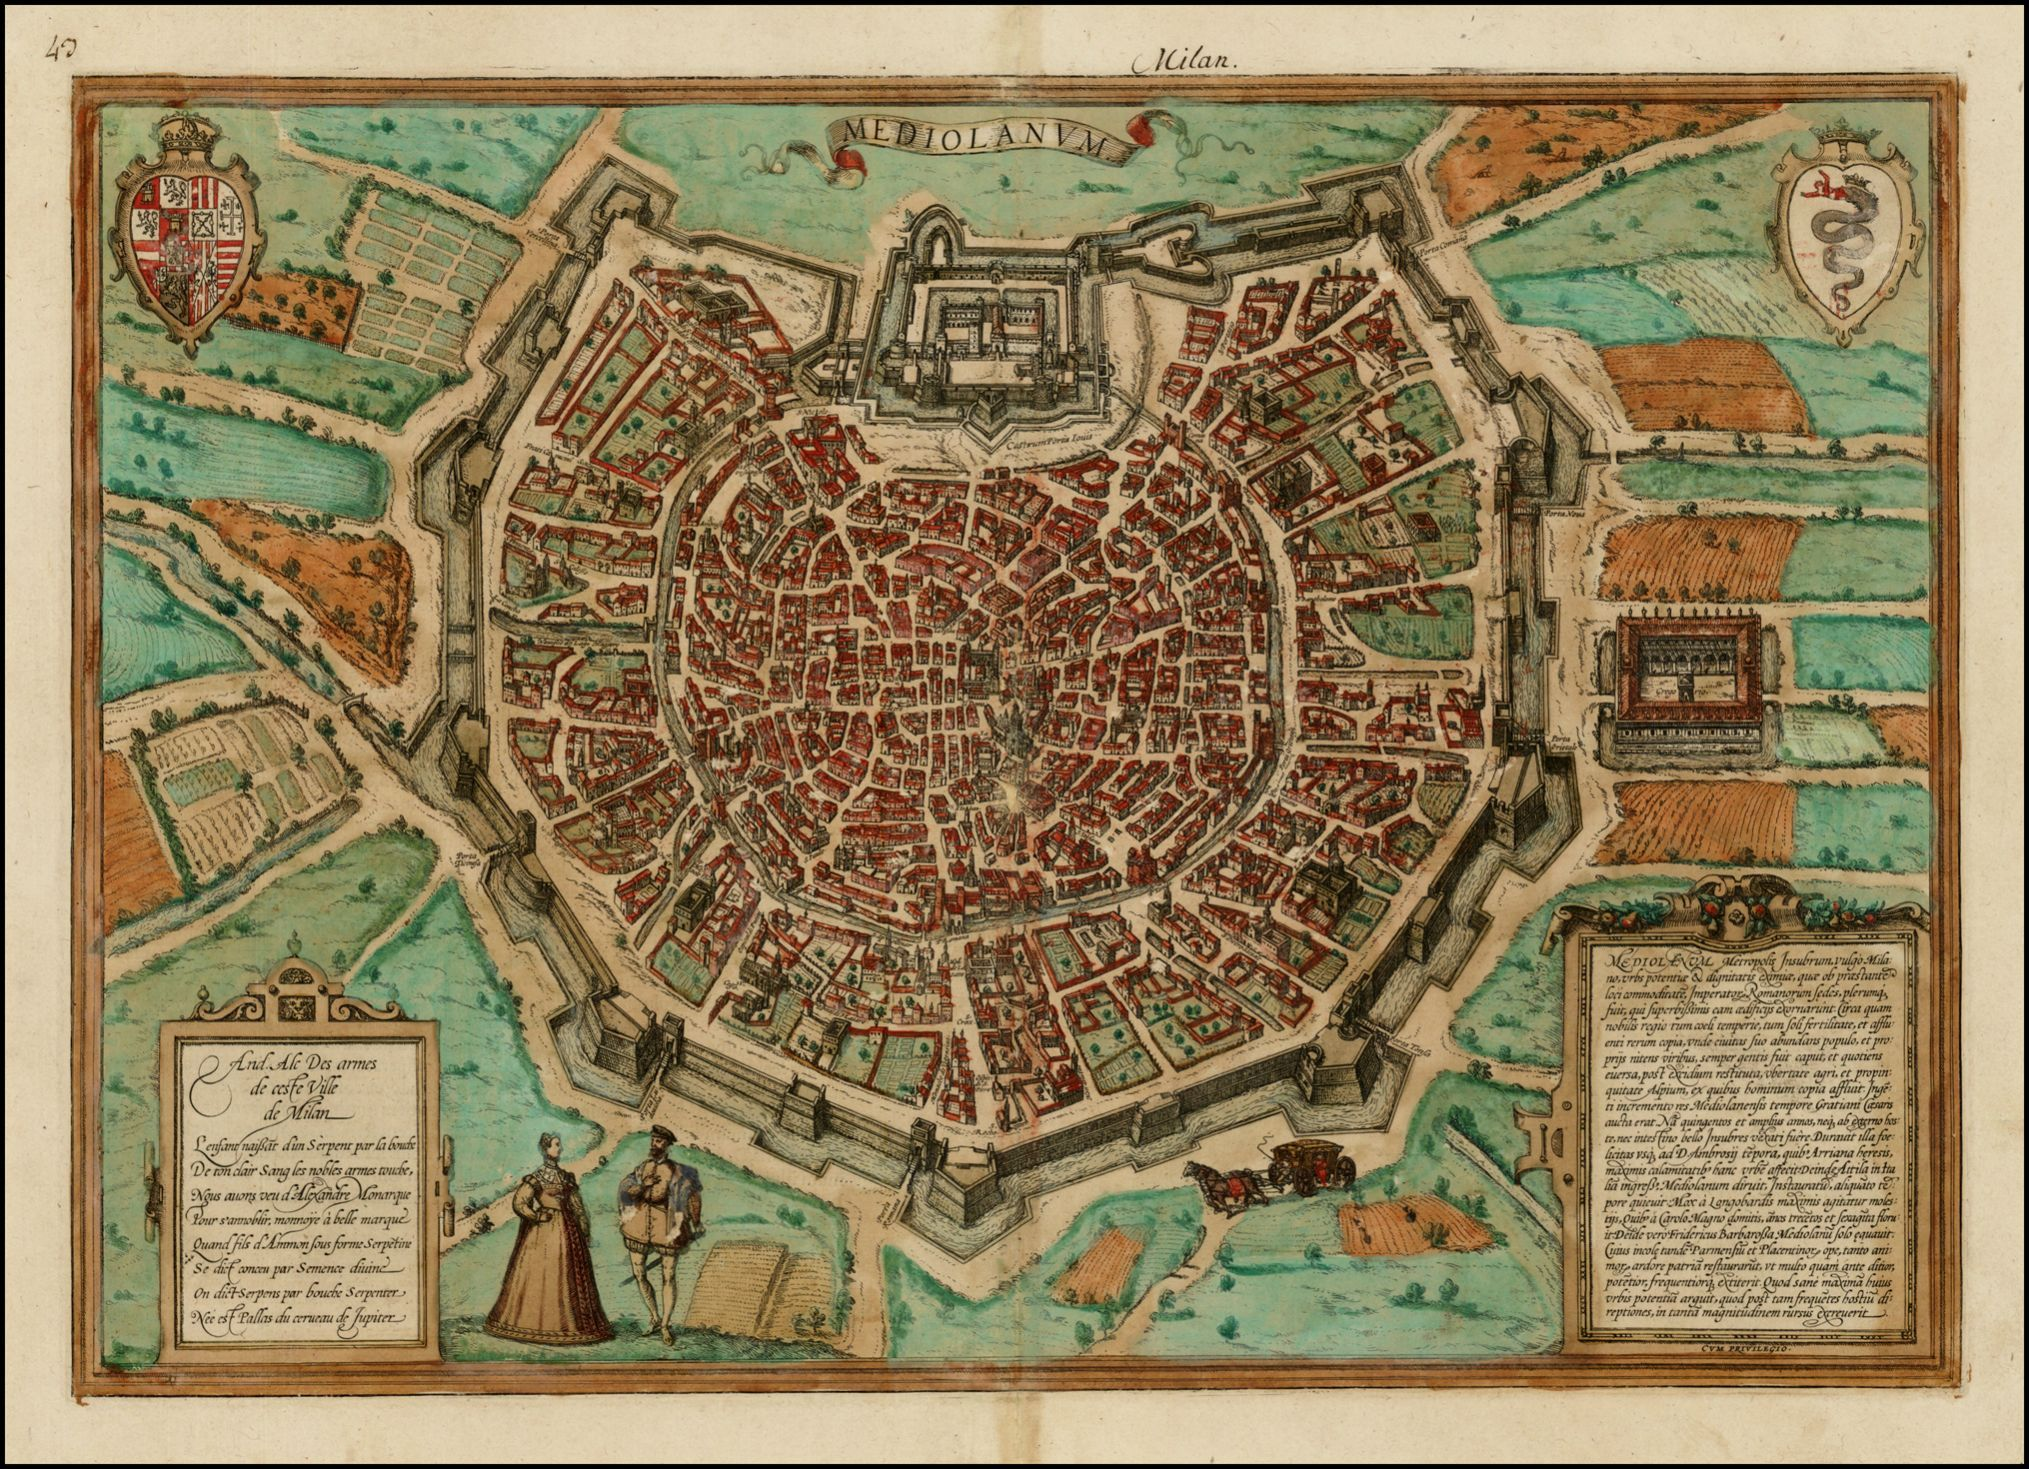 View of milan 1572 map milan milano italy mapporn map art view of milan 1572 map milan milano italy mapporn gumiabroncs Image collections